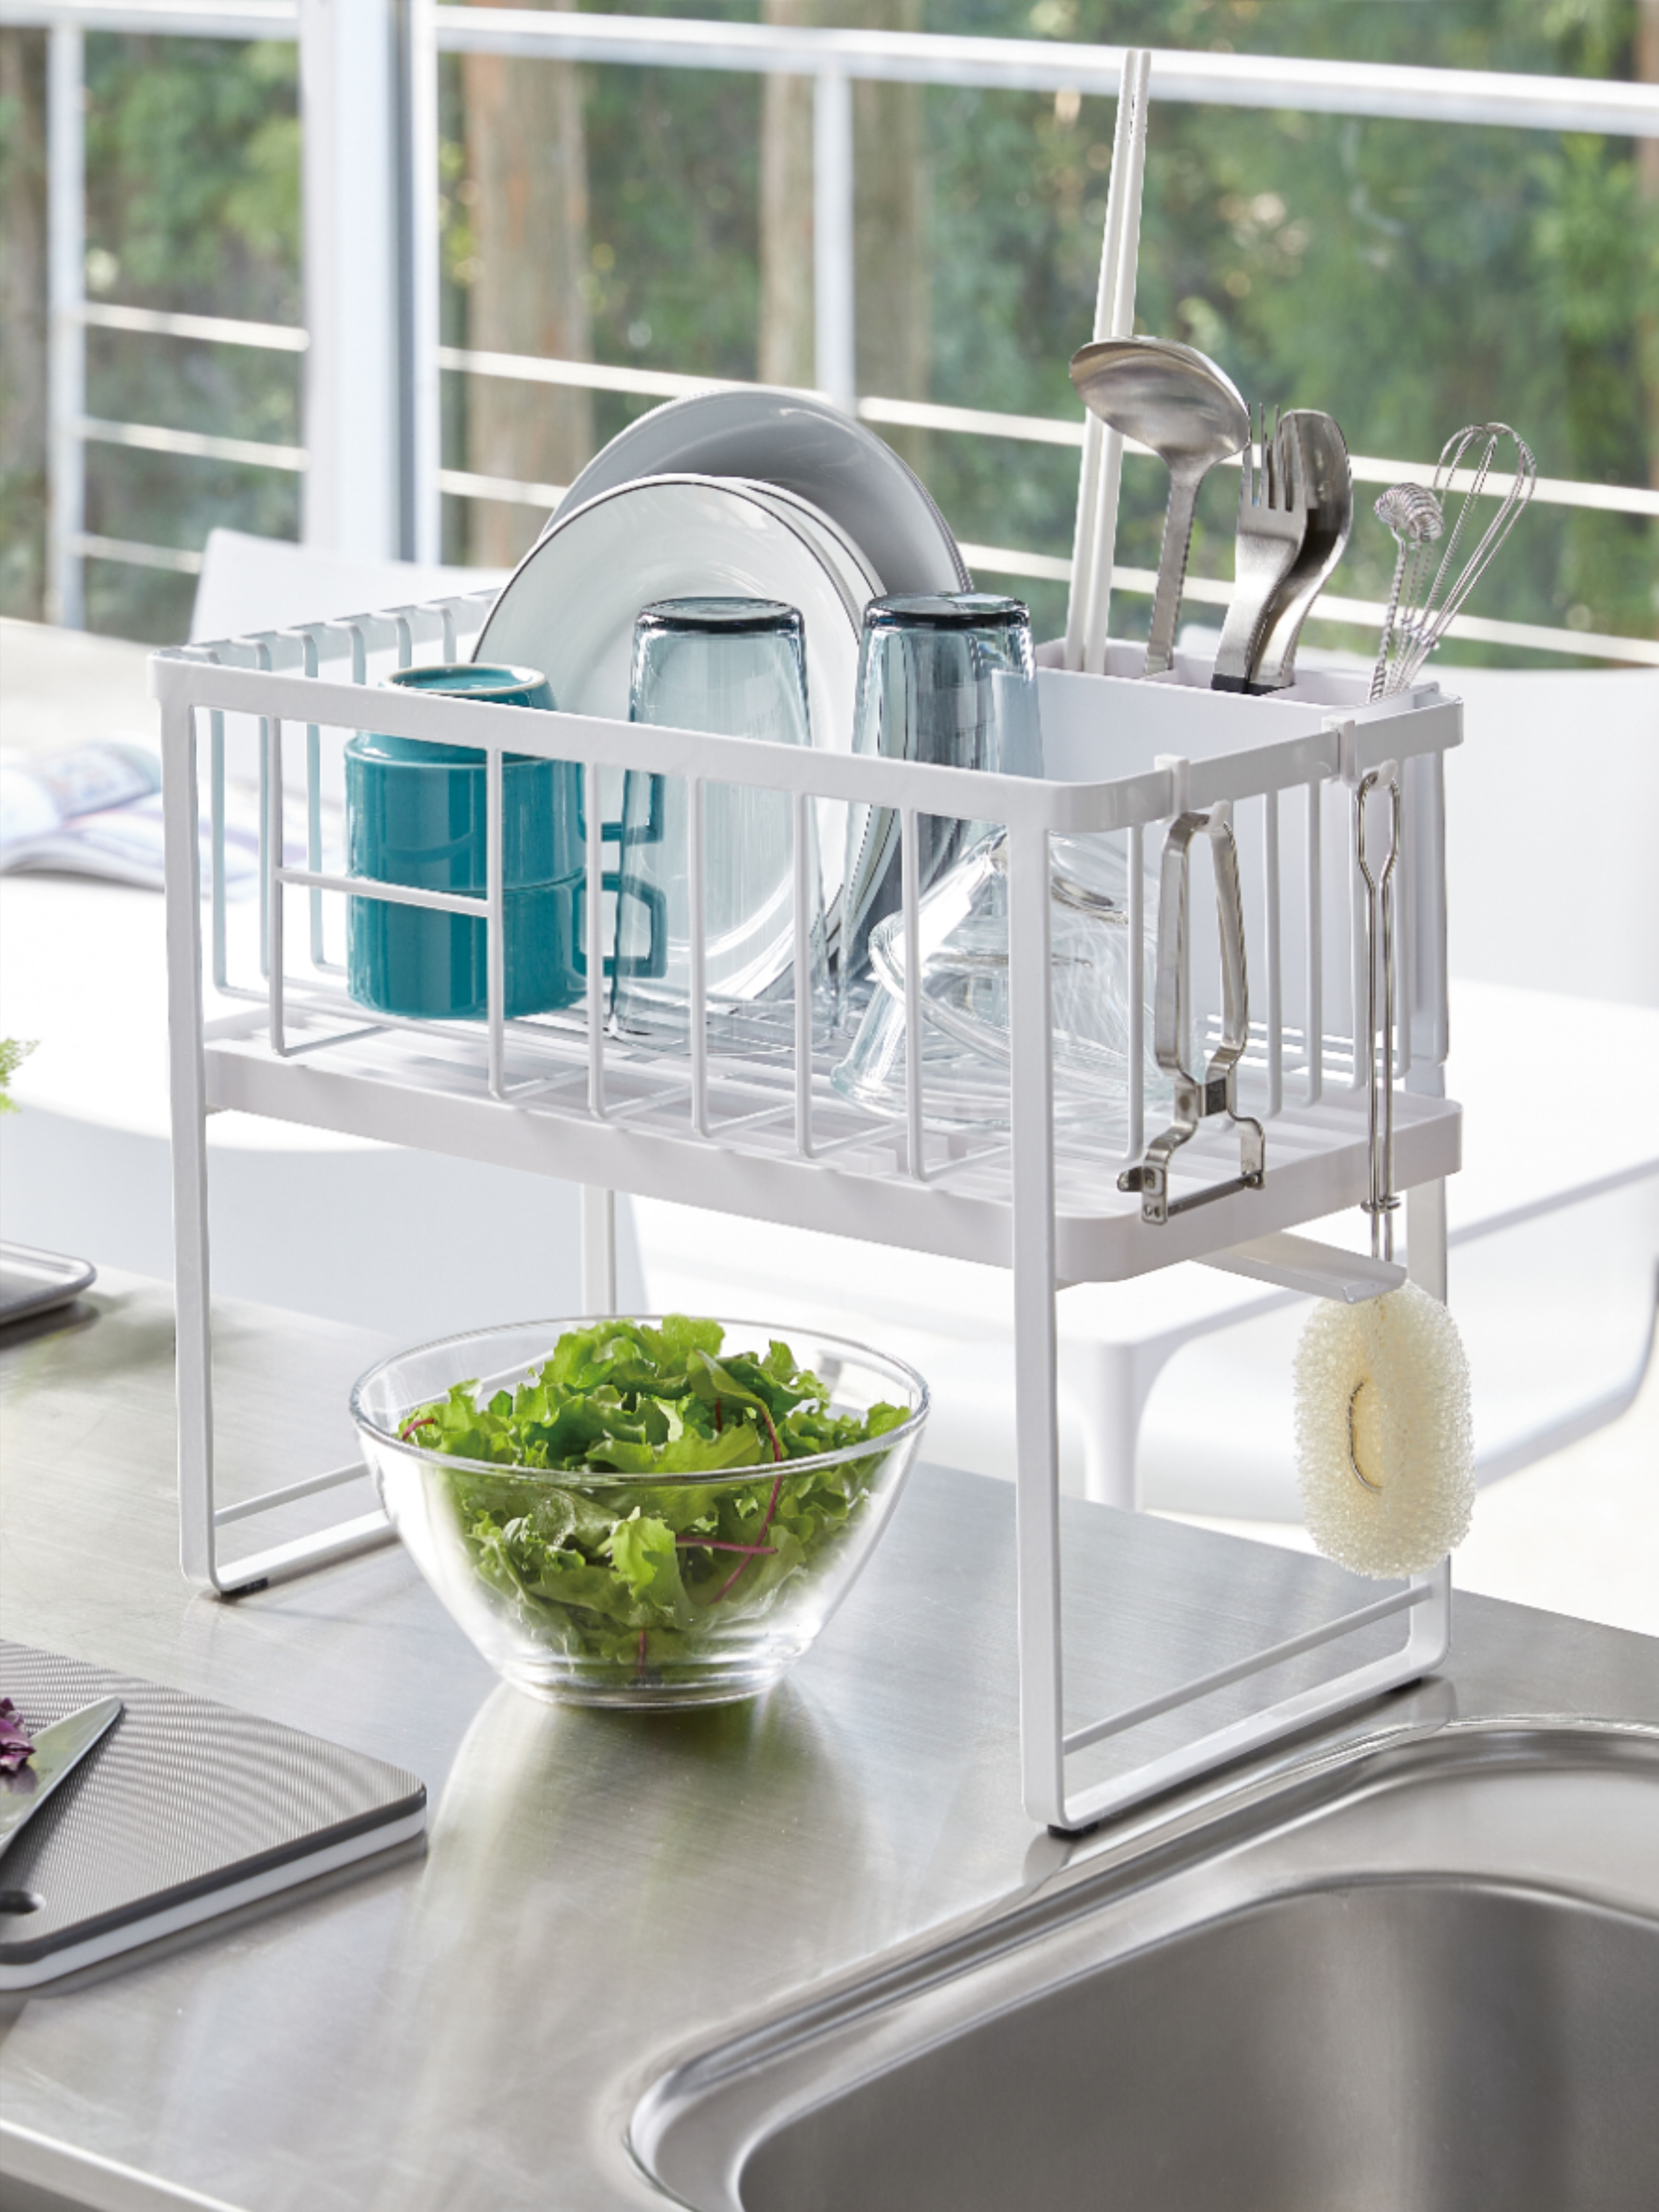 Halve your drying area and double your dish drying potential. This popular drying rack is packed with customizable features, like a self-draining, adjustable water spout and moveable hooks for hanging awkward utensils. Bottom shelf removes for easy cleaning or to make open space for drying larger pots and pans.